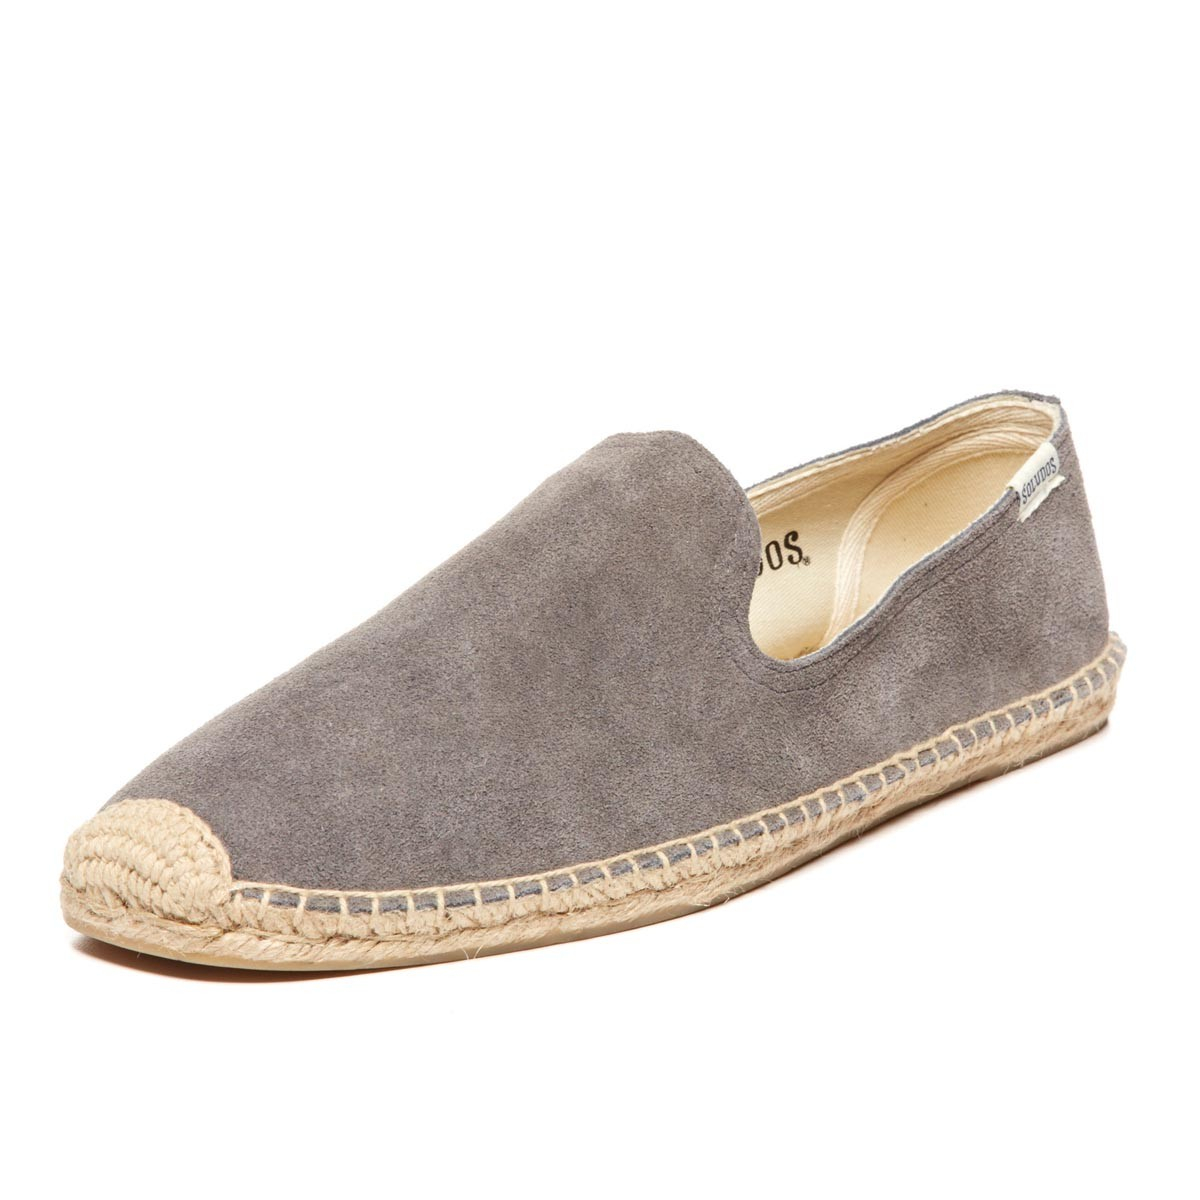 Soludos Mens Suede Smoking Slipper In Gray For Men Lyst